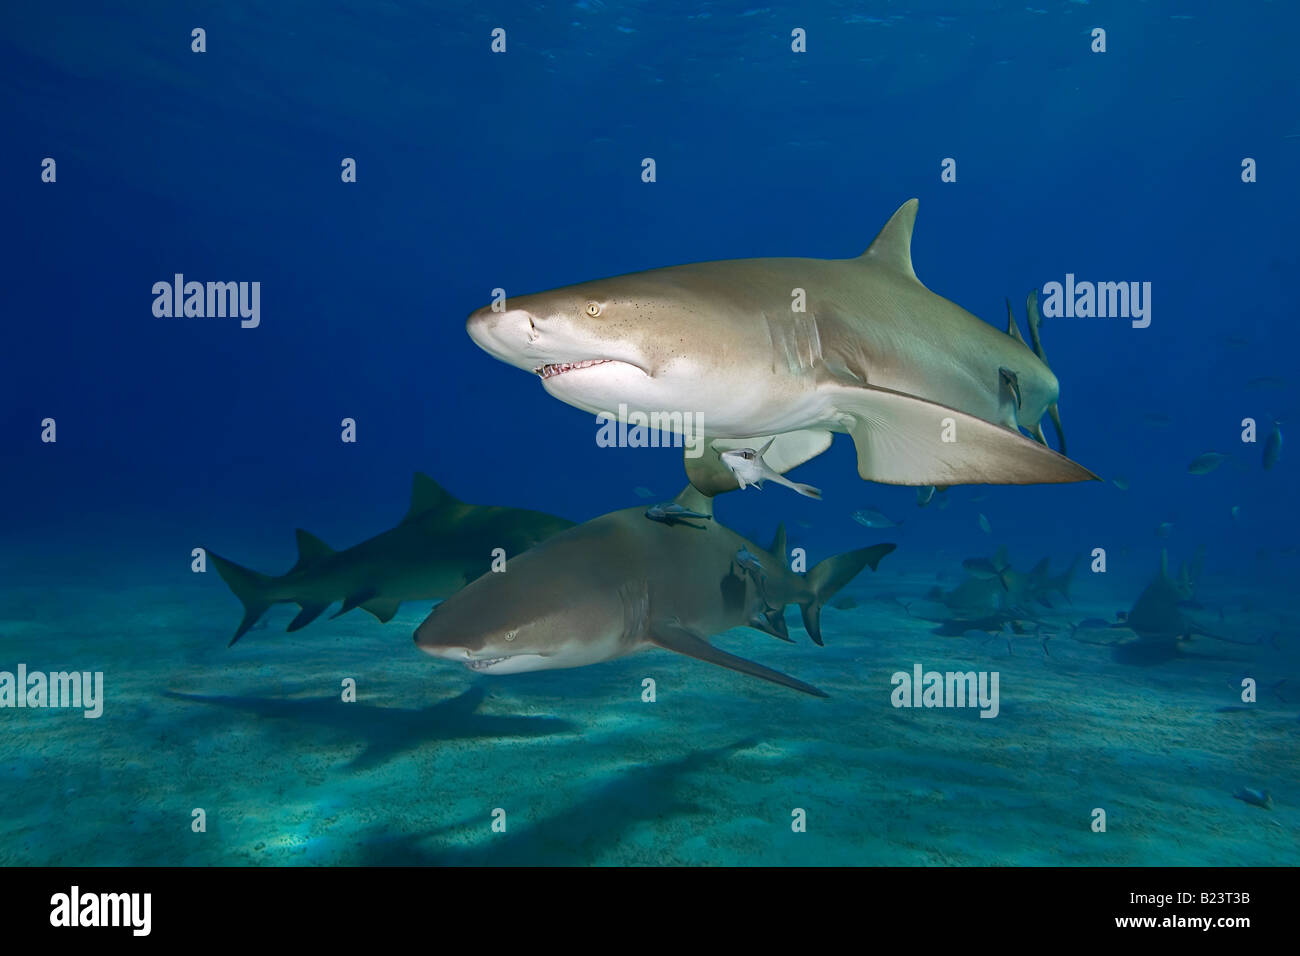 Lemon sharks, Bahamas - Stock Image